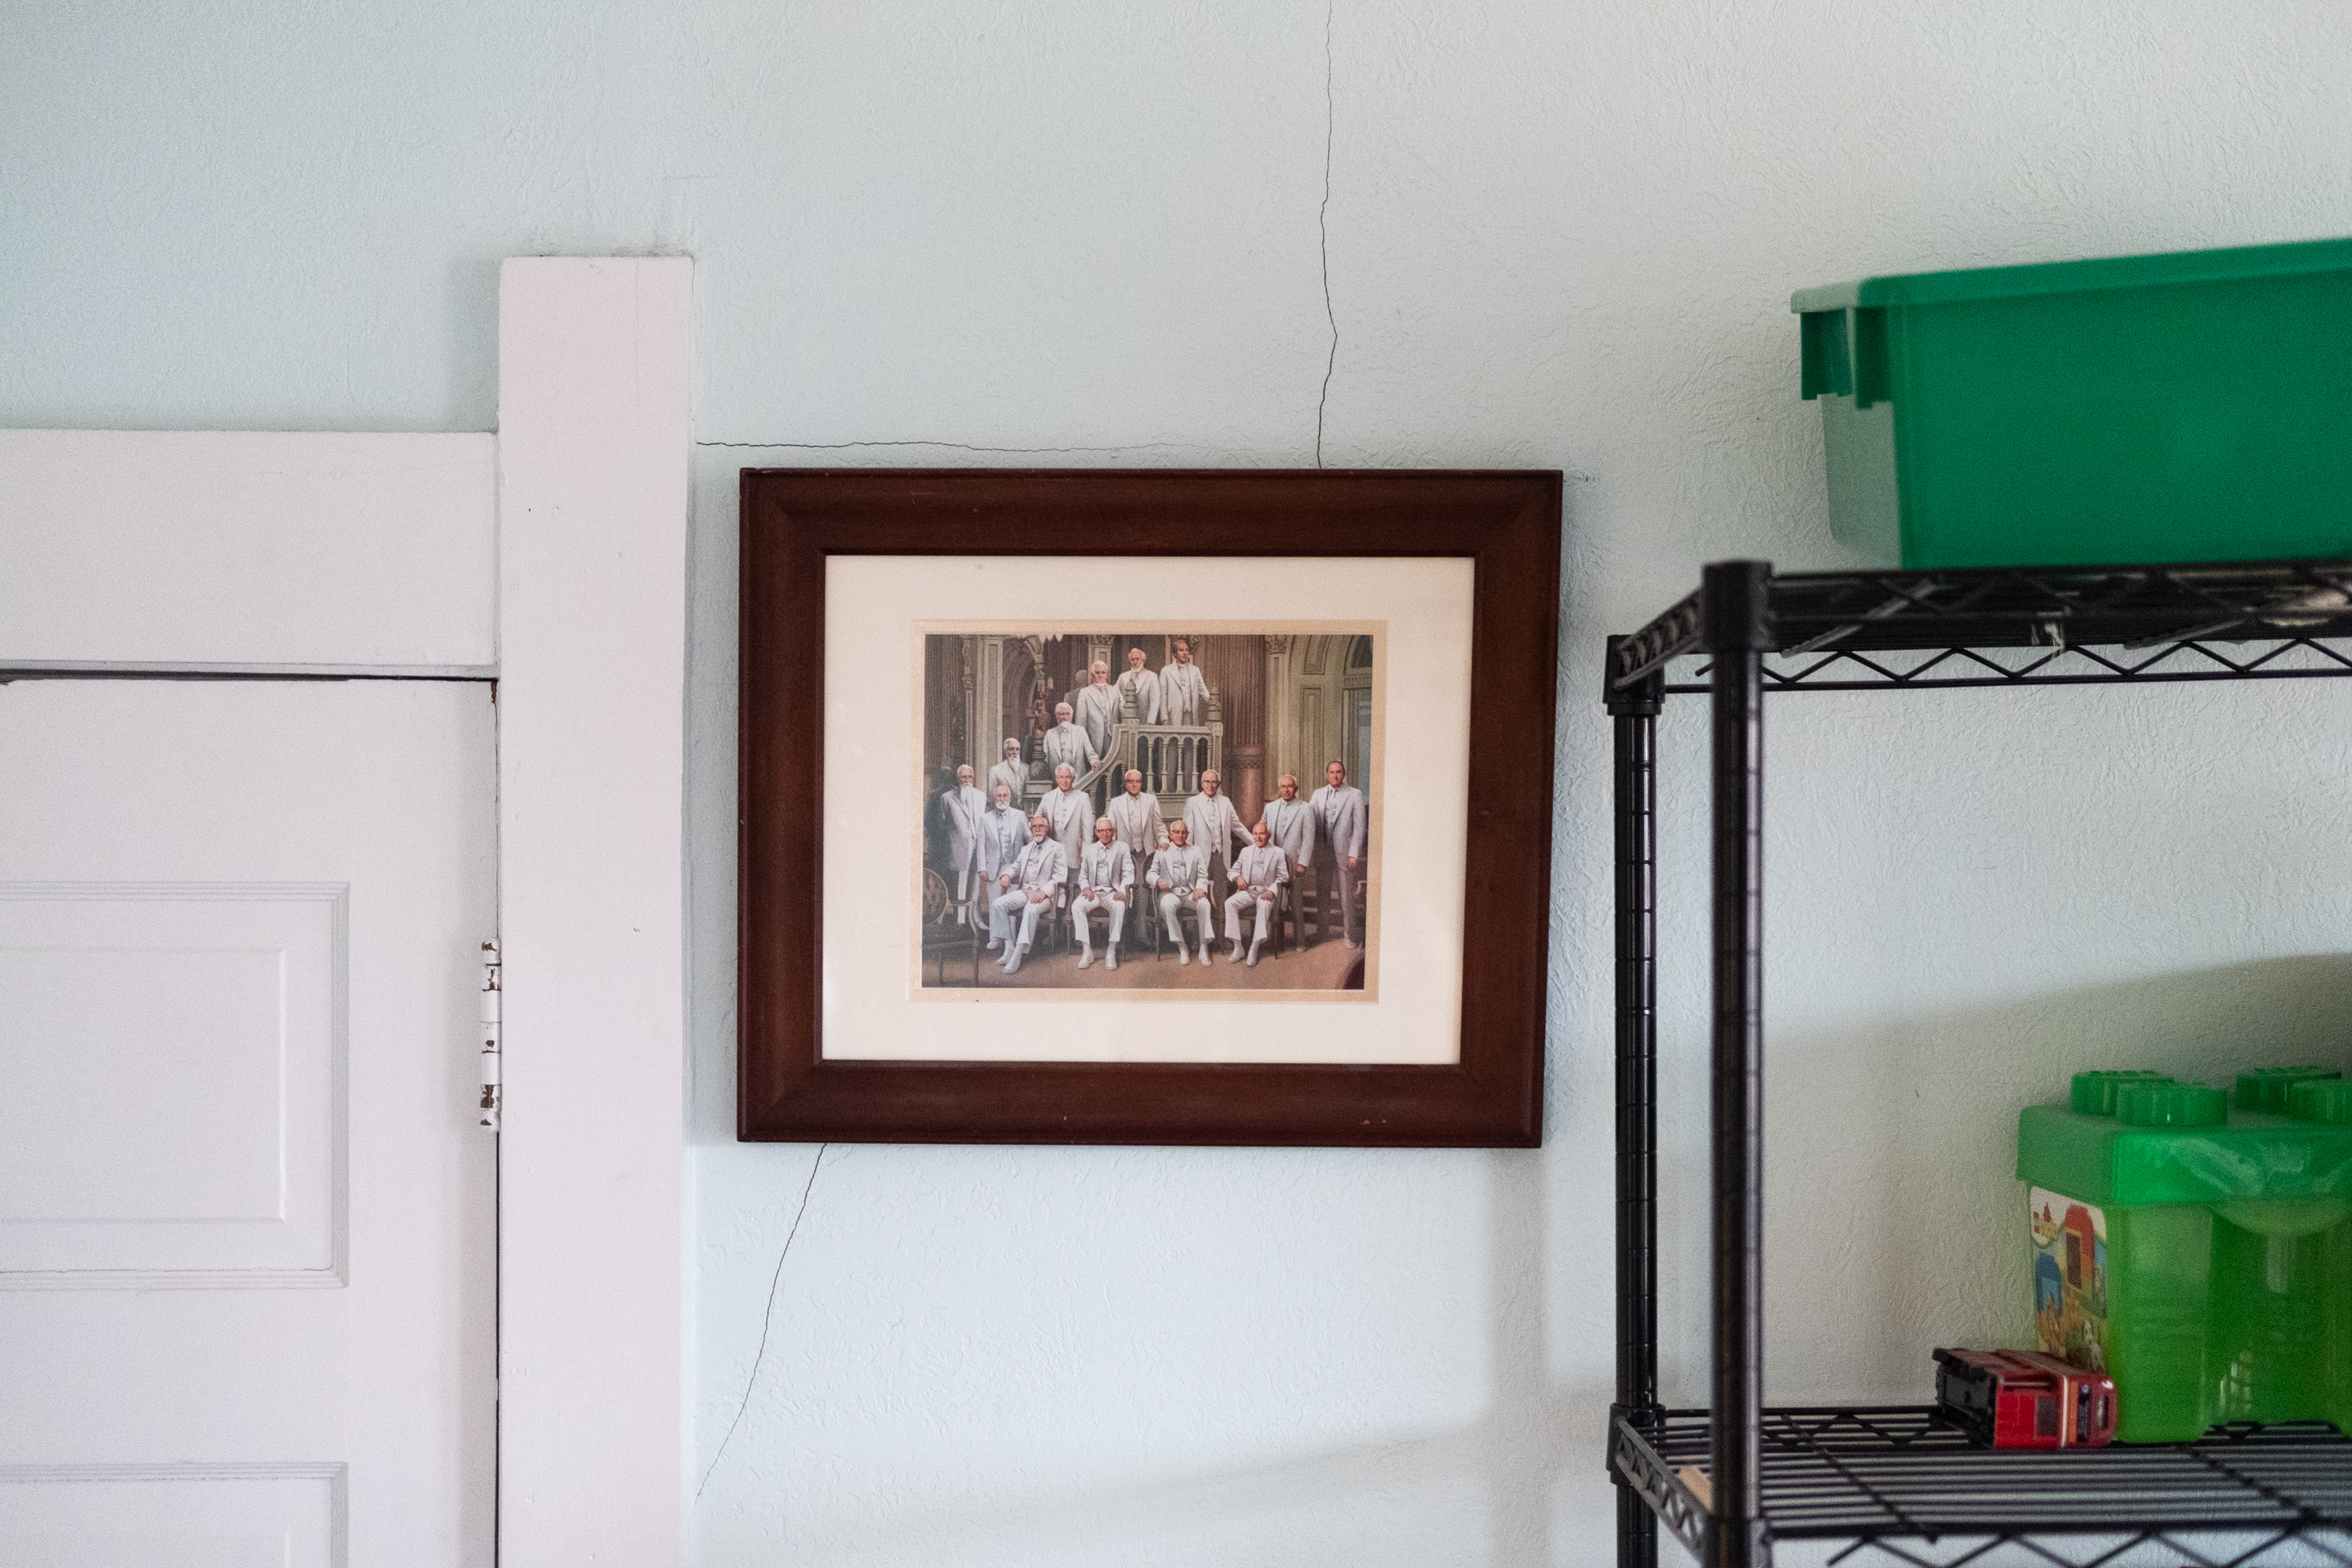 Portrait of the Latter-Day Saint Prophets in a member's home, Martinsville, IN, 2019